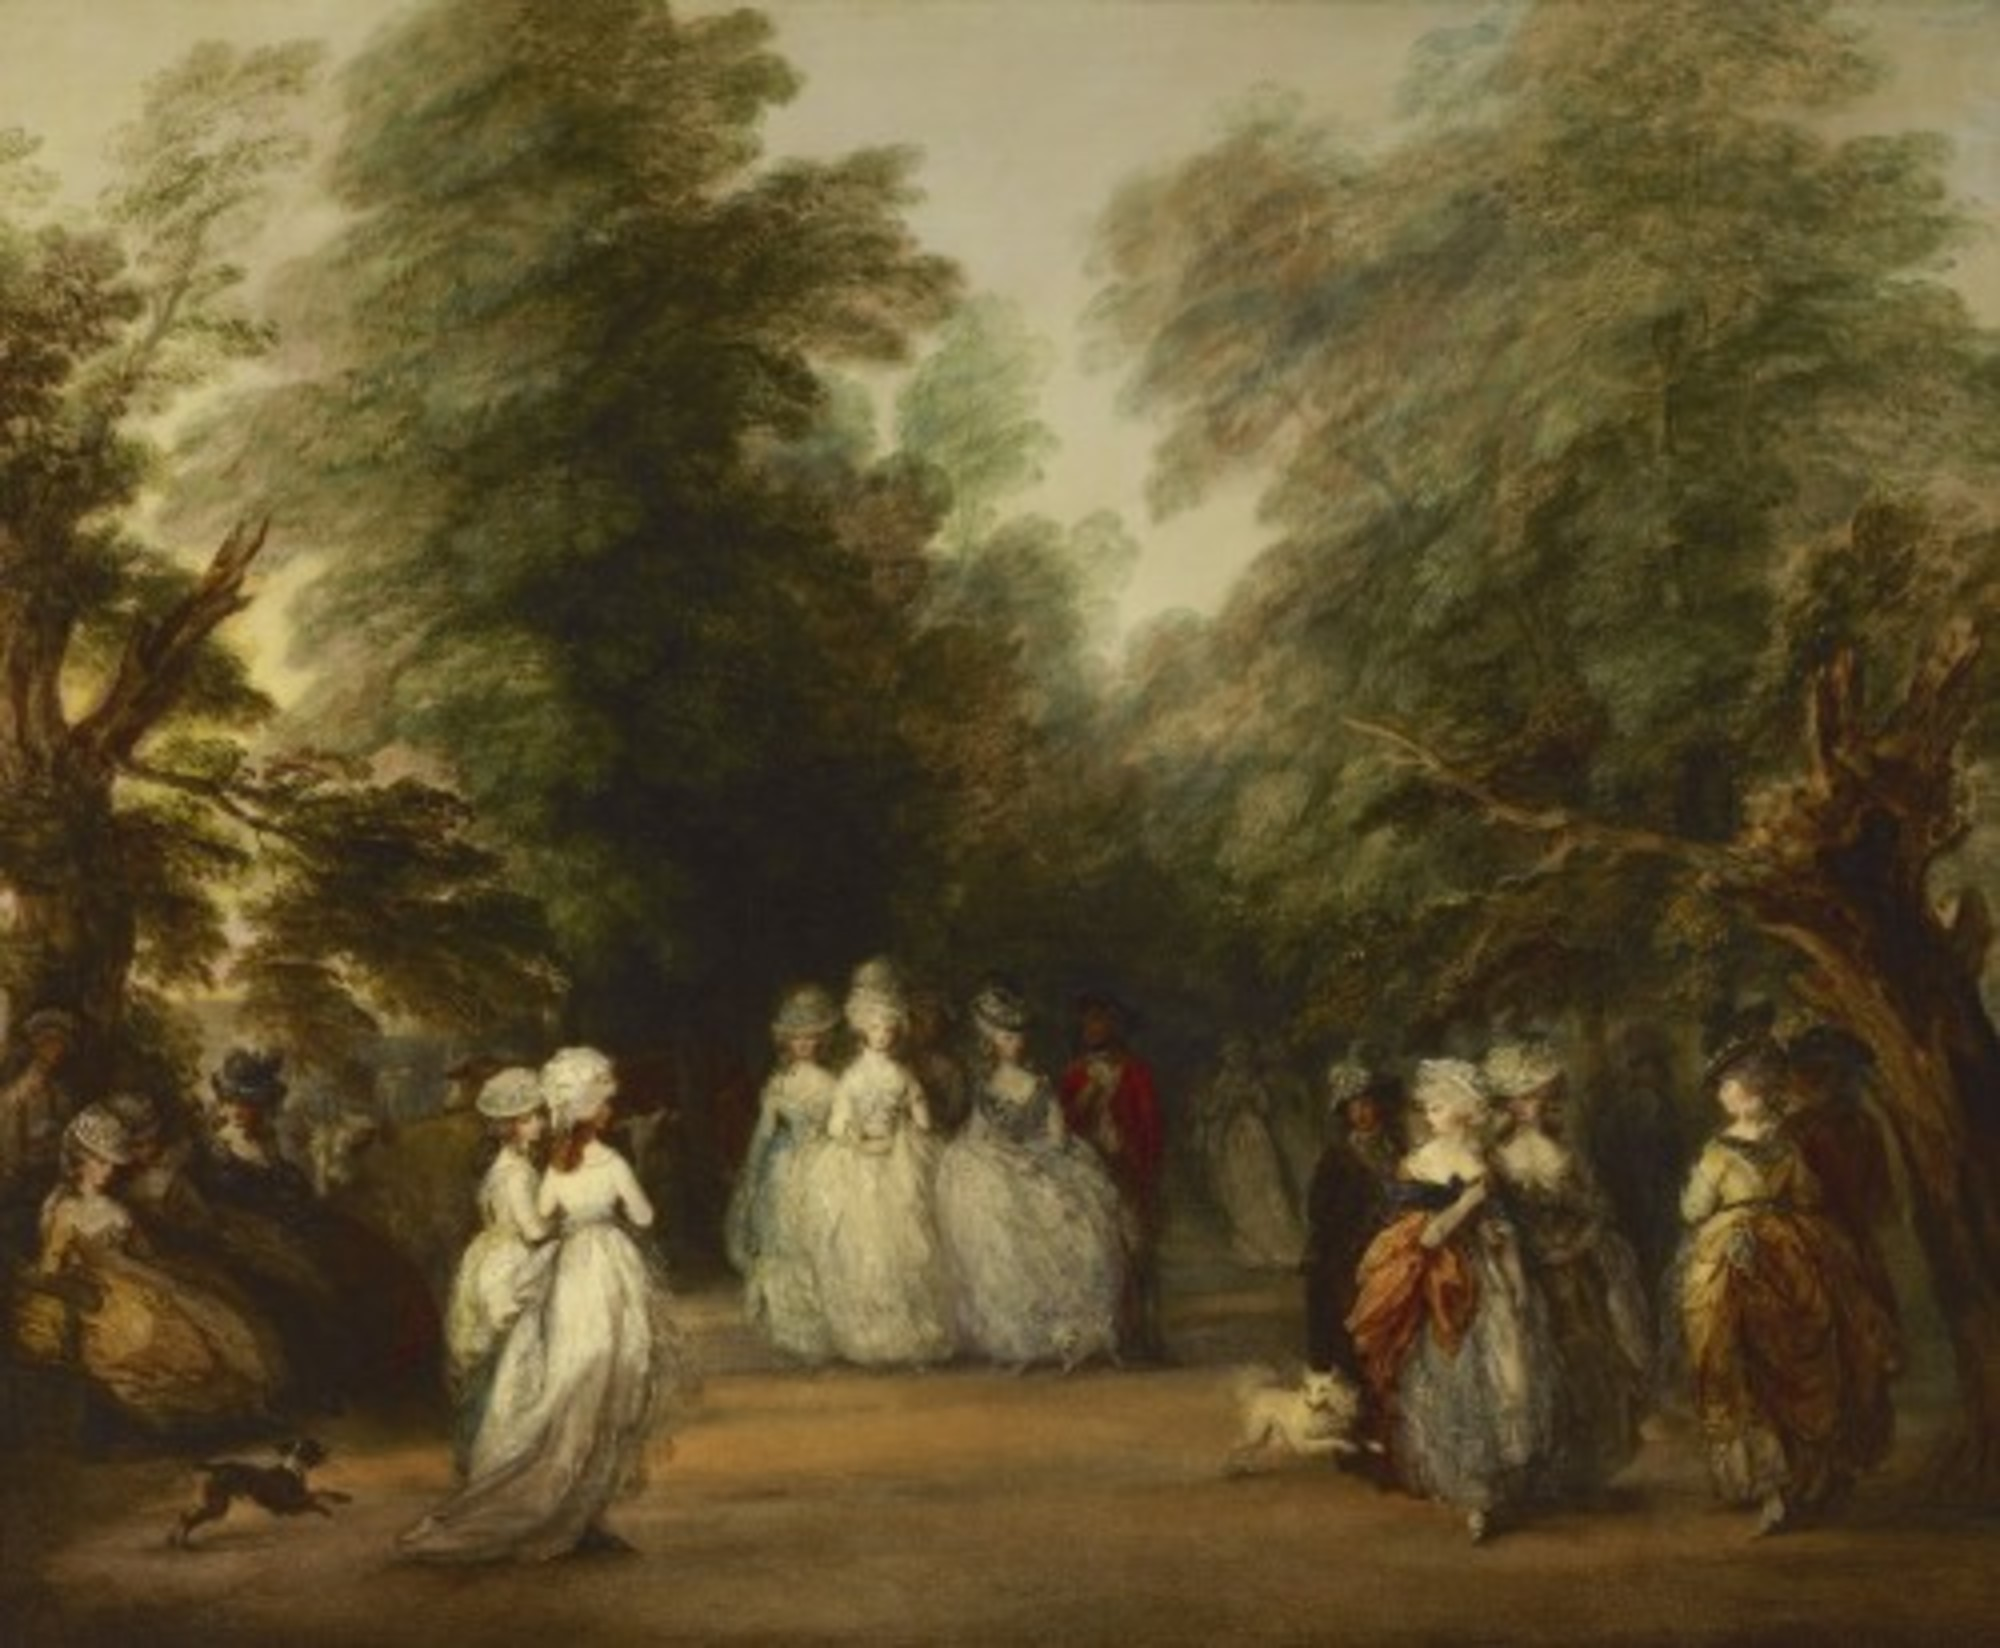 Thomas_Gainsborough_-_The_Mall_in_St._Jamess_Park_-_Google_Art_Project.jpg